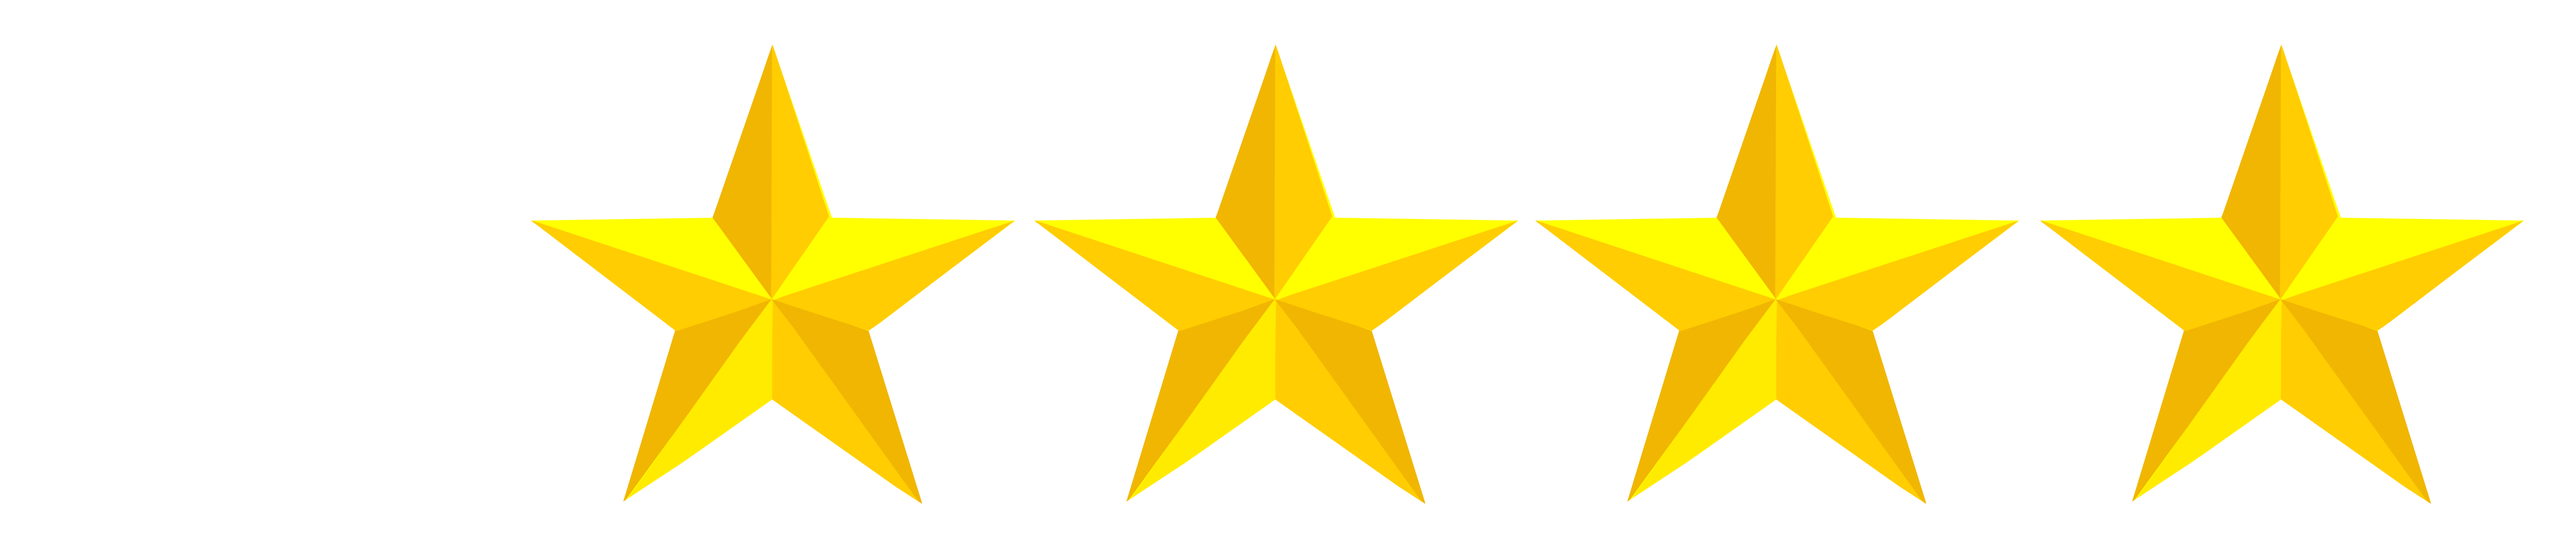 4 star png